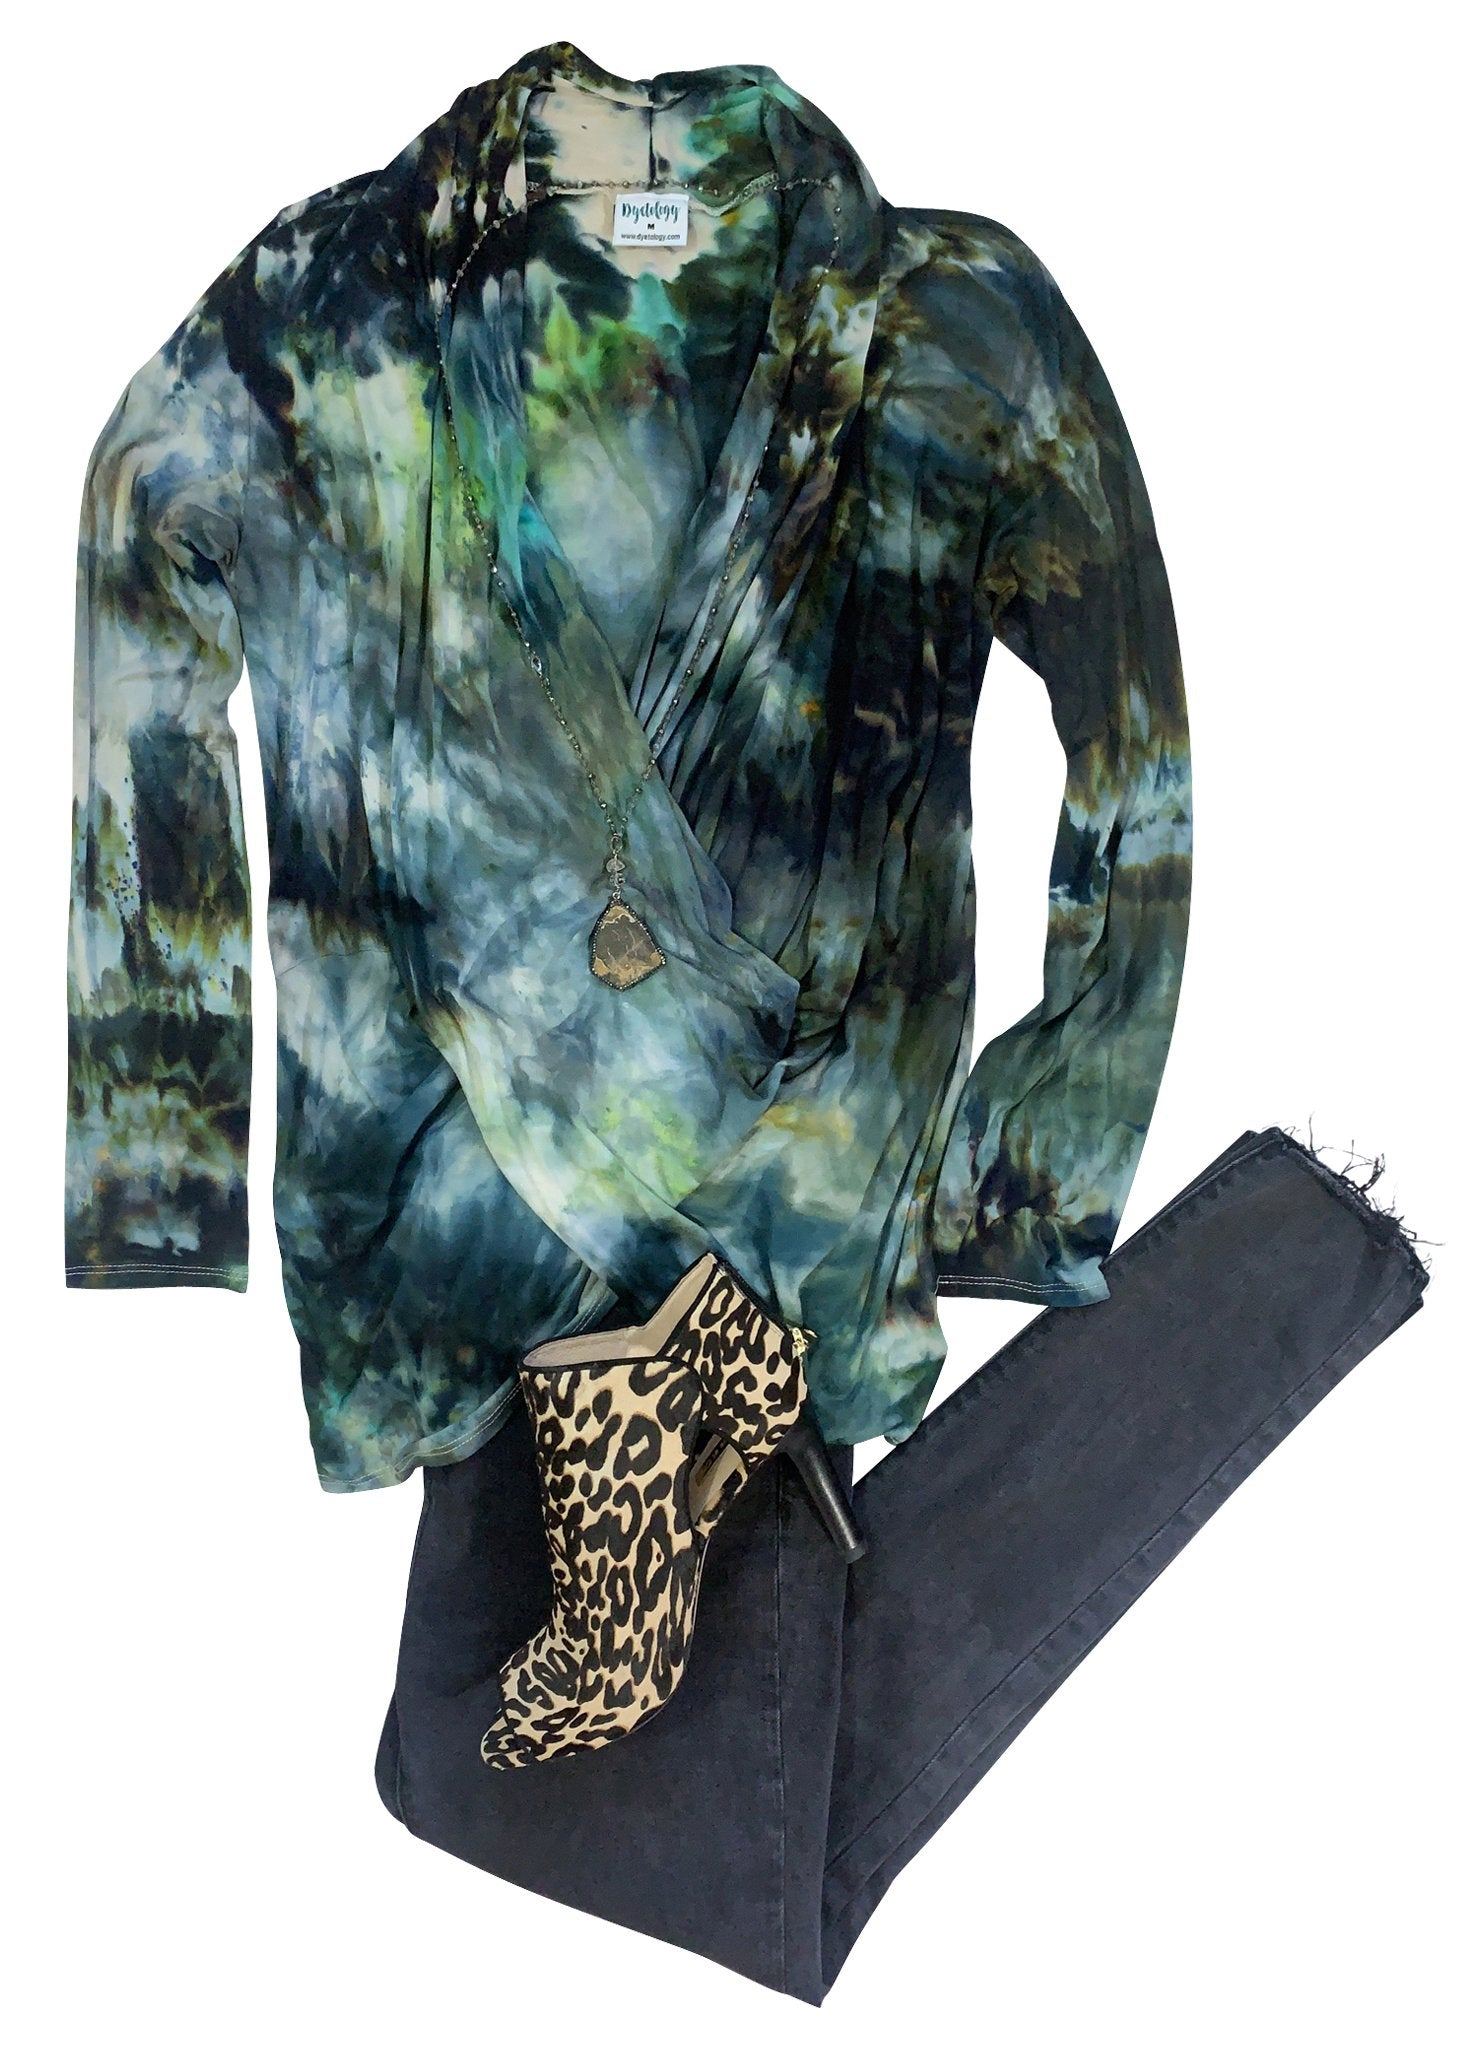 Criss Cross Blouse in Woodland Camo - Top - Dyetology